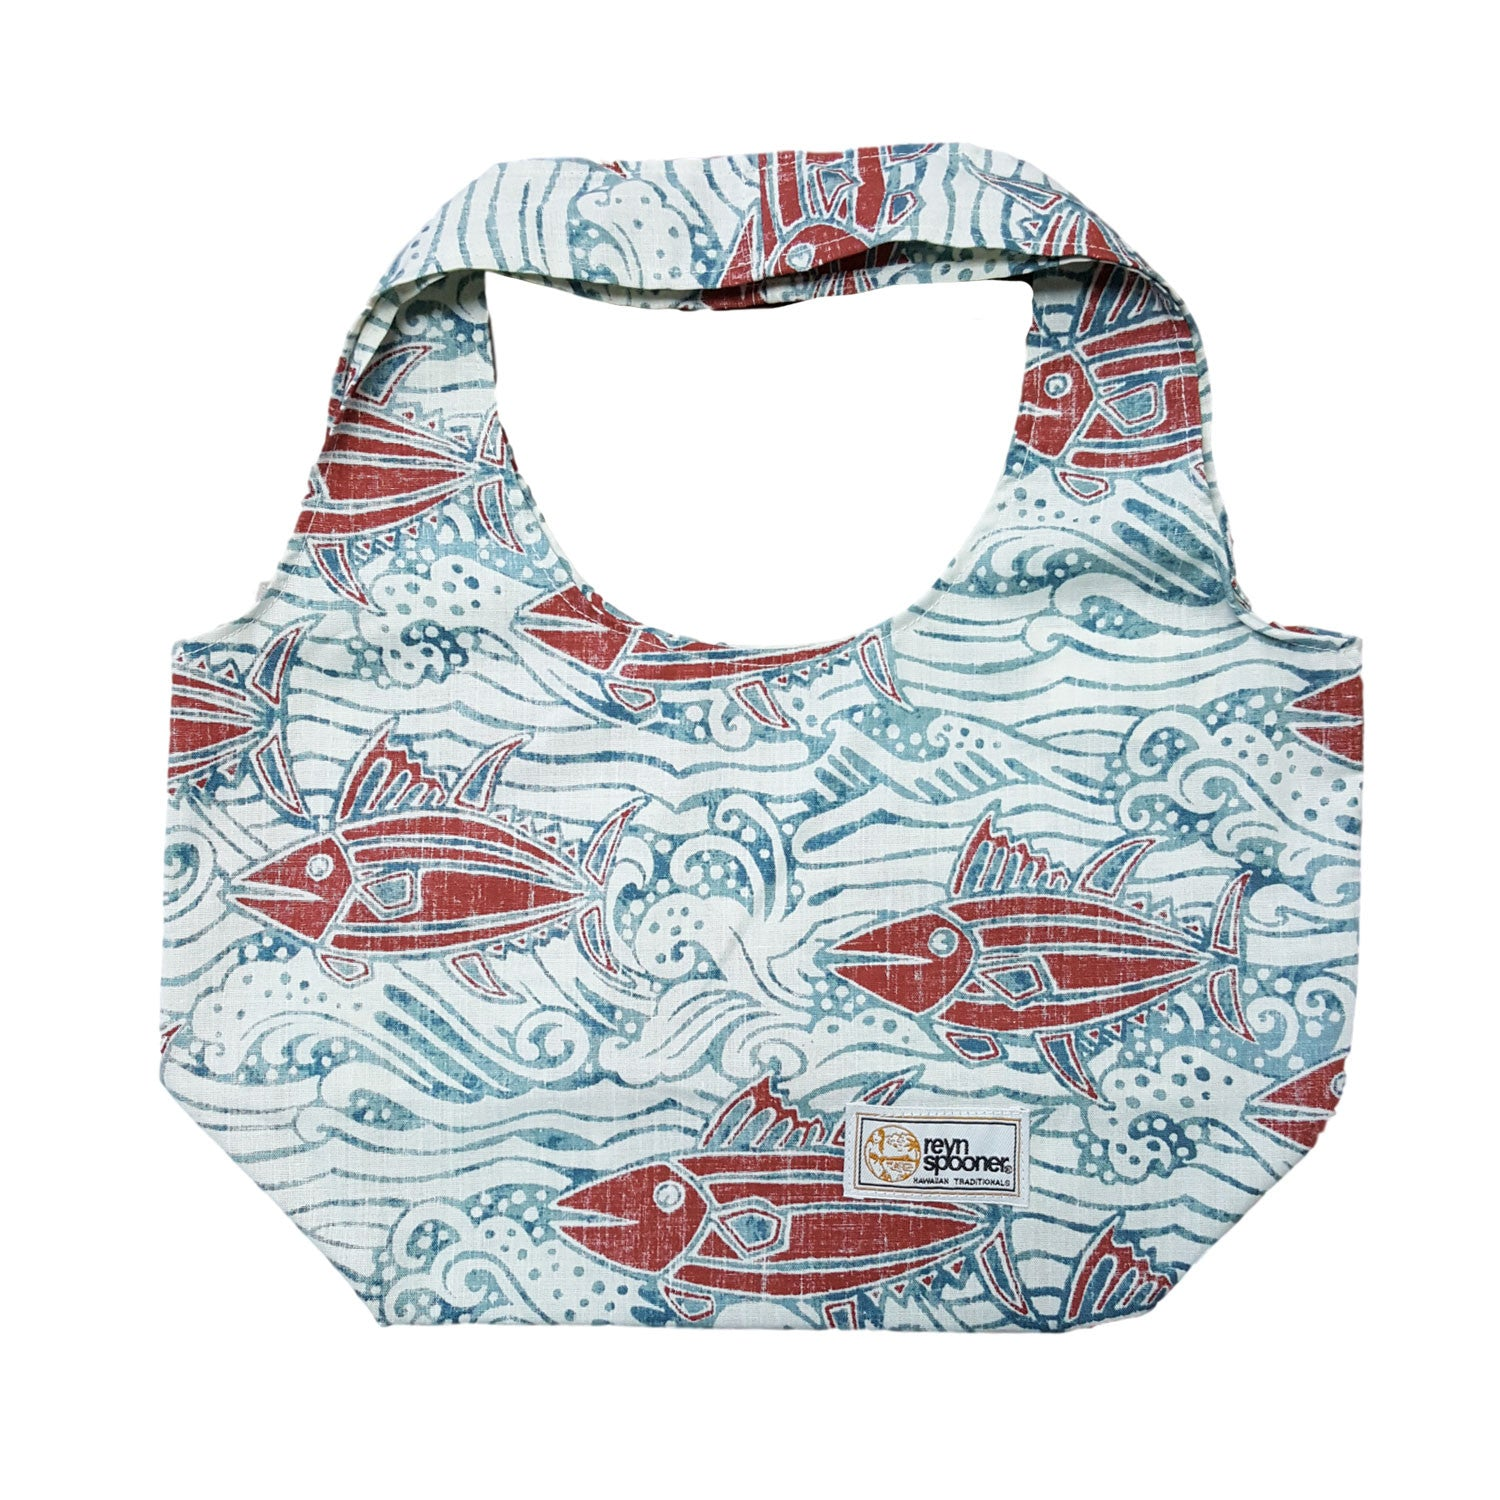 A' U I NALU / SMALL REUSABLE BAG - Zoomed